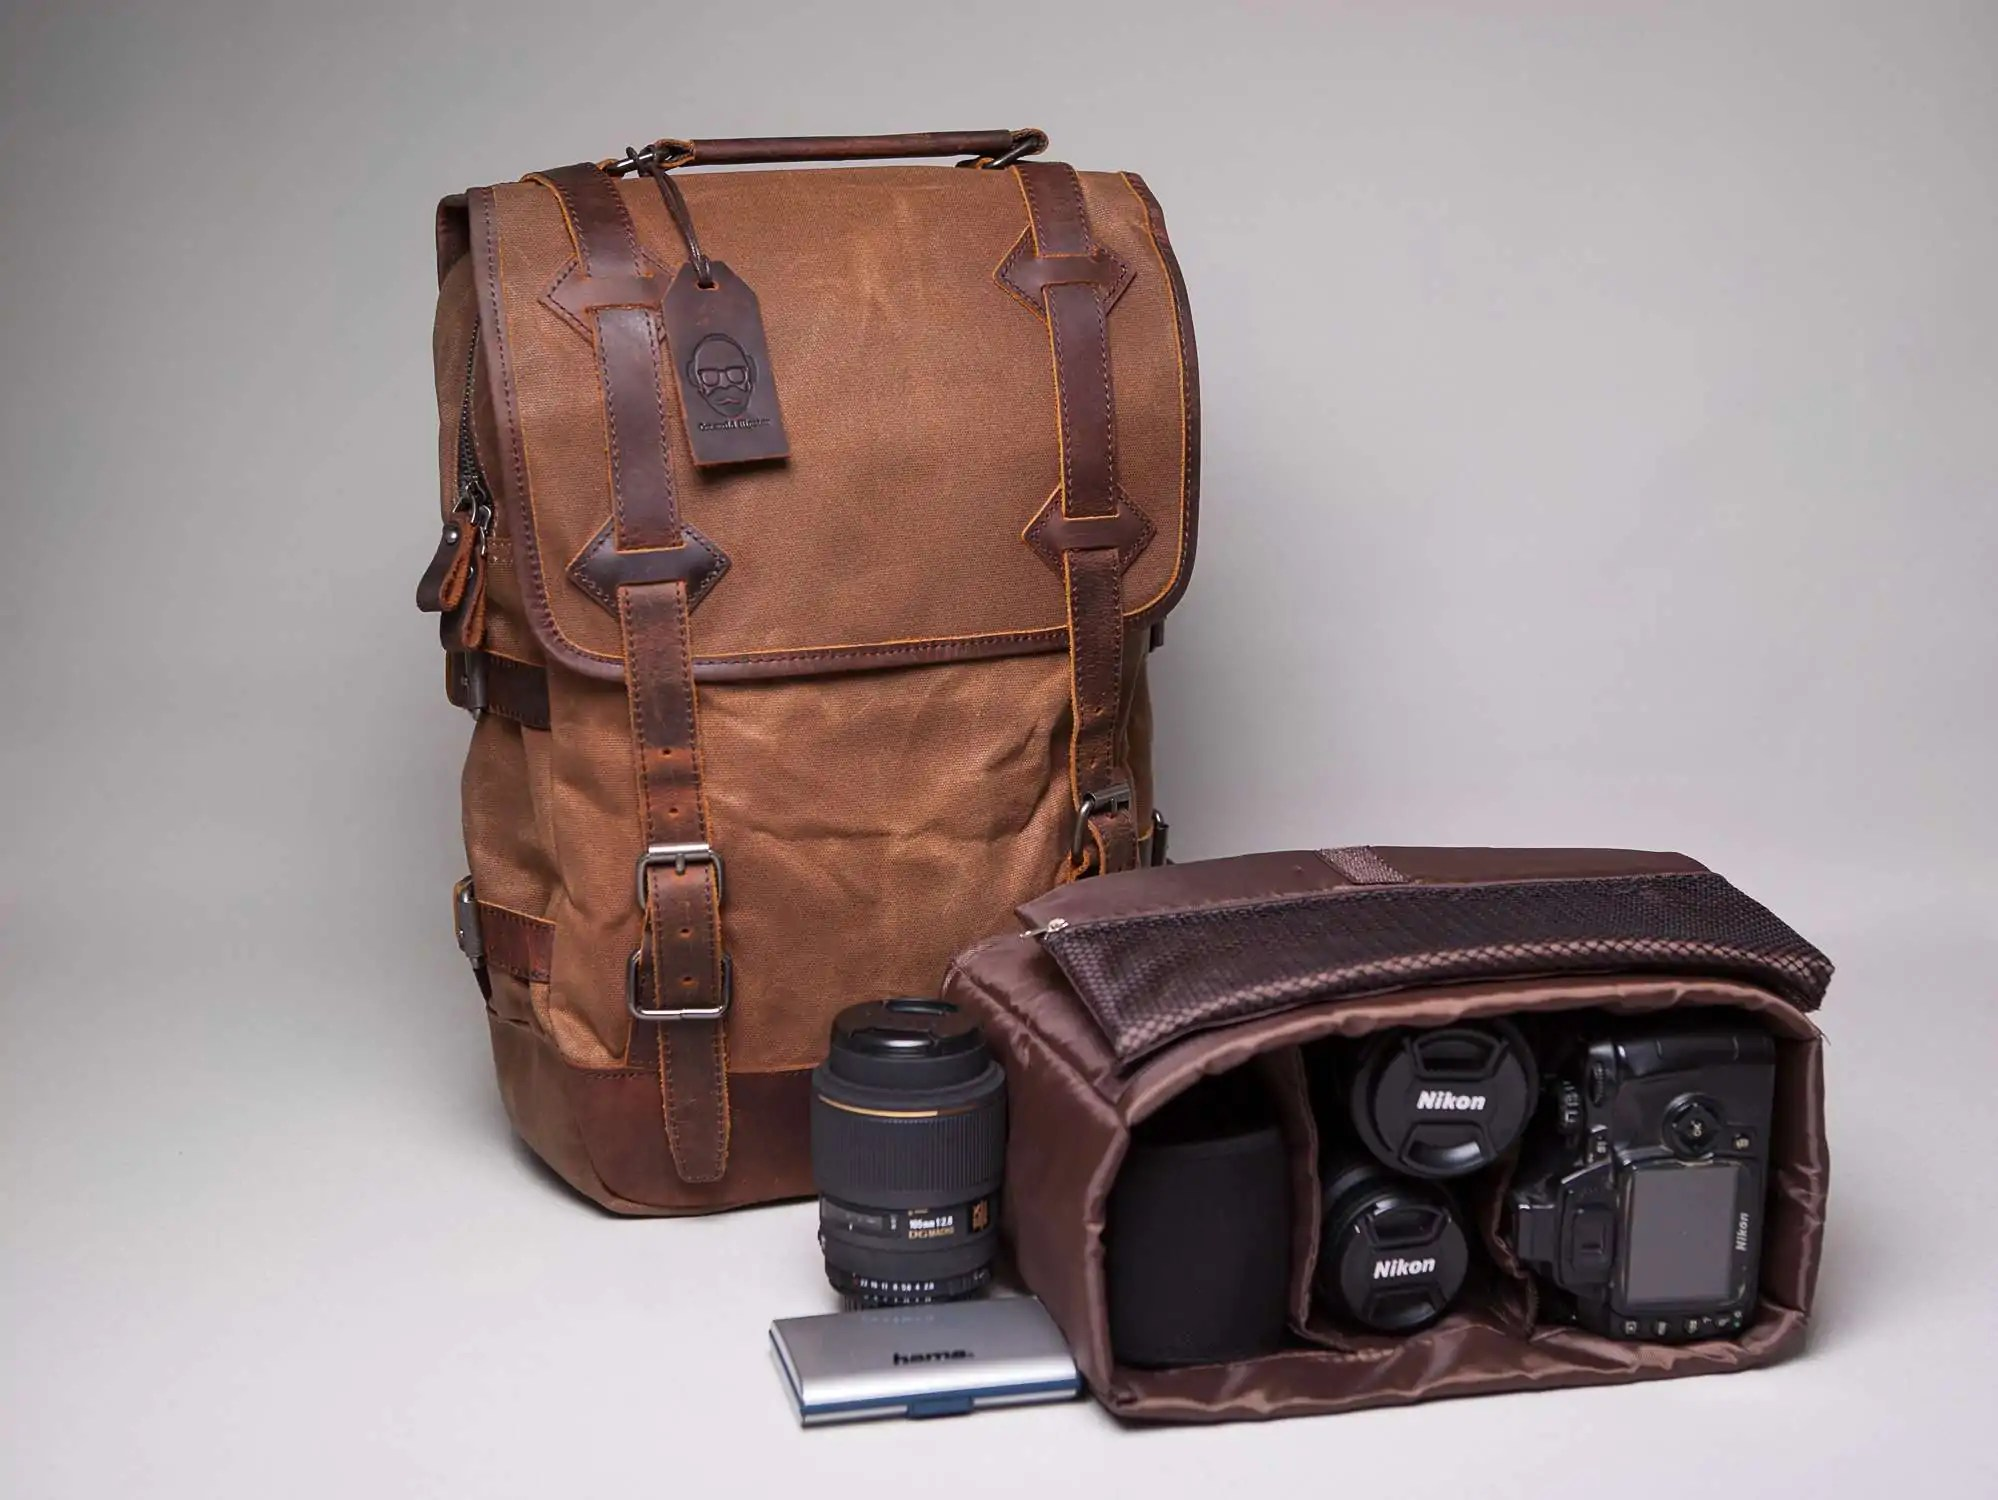 5 must-have features that make a camera bag worth every penny